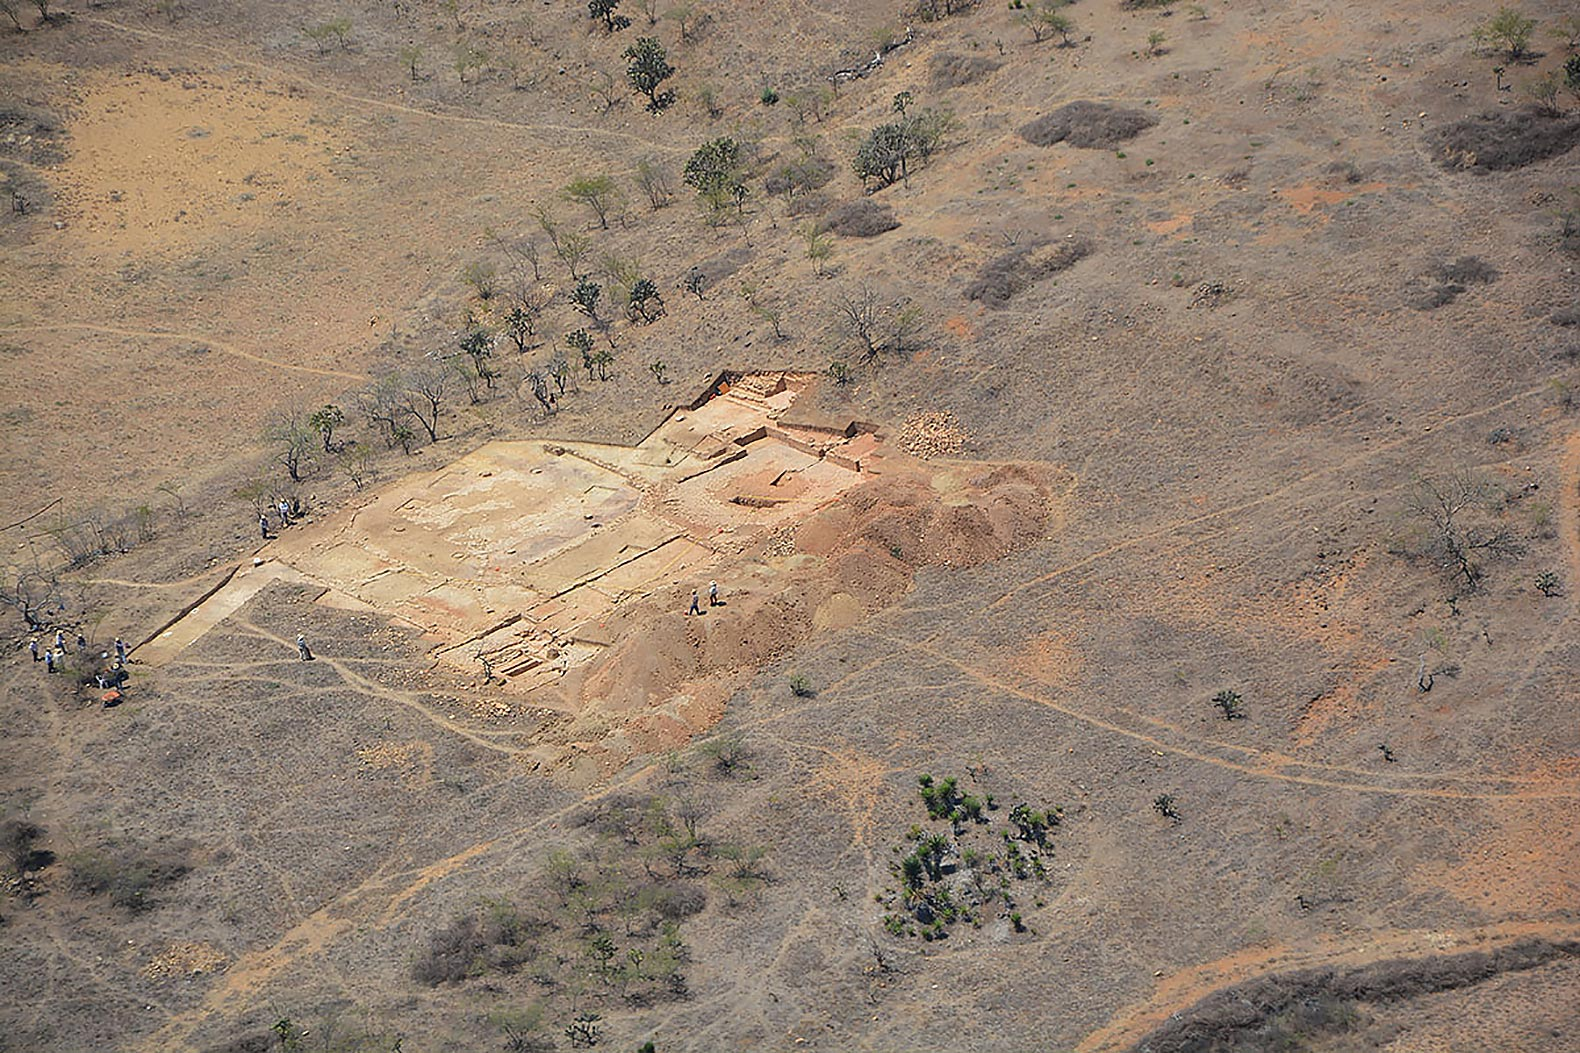 2,000-year-old pre-Aztec ancient palace complex found in Mexico